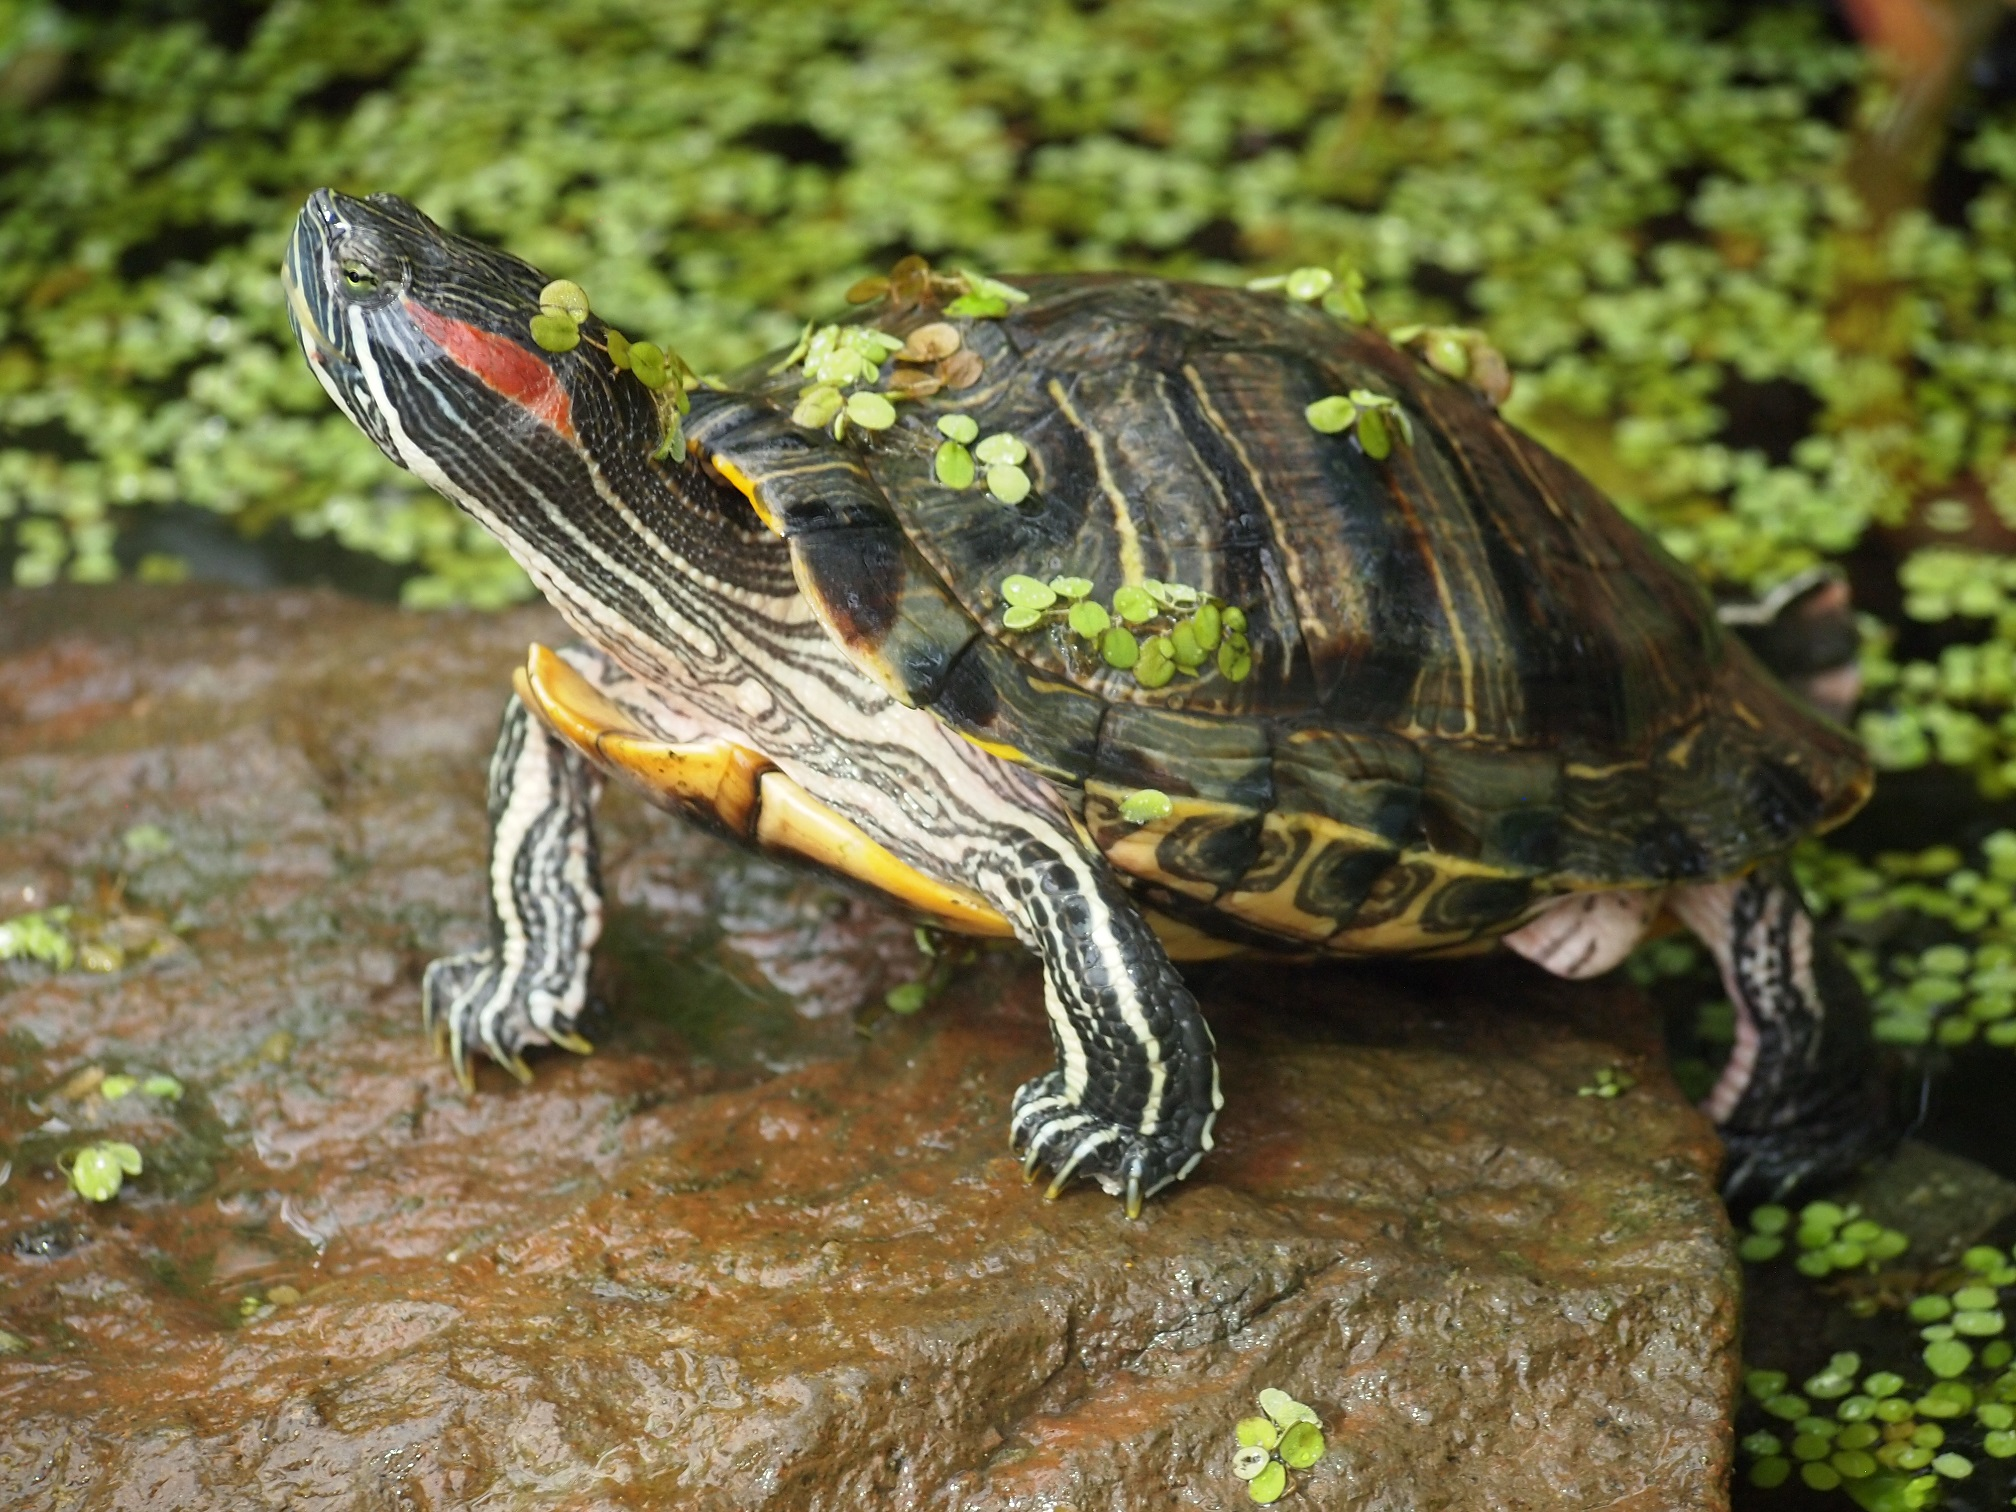 Red-eared slider from Maharashtra. The invasive species is often abandoned in water bodies by pet owners. Photo by Rahul Kulkarni.